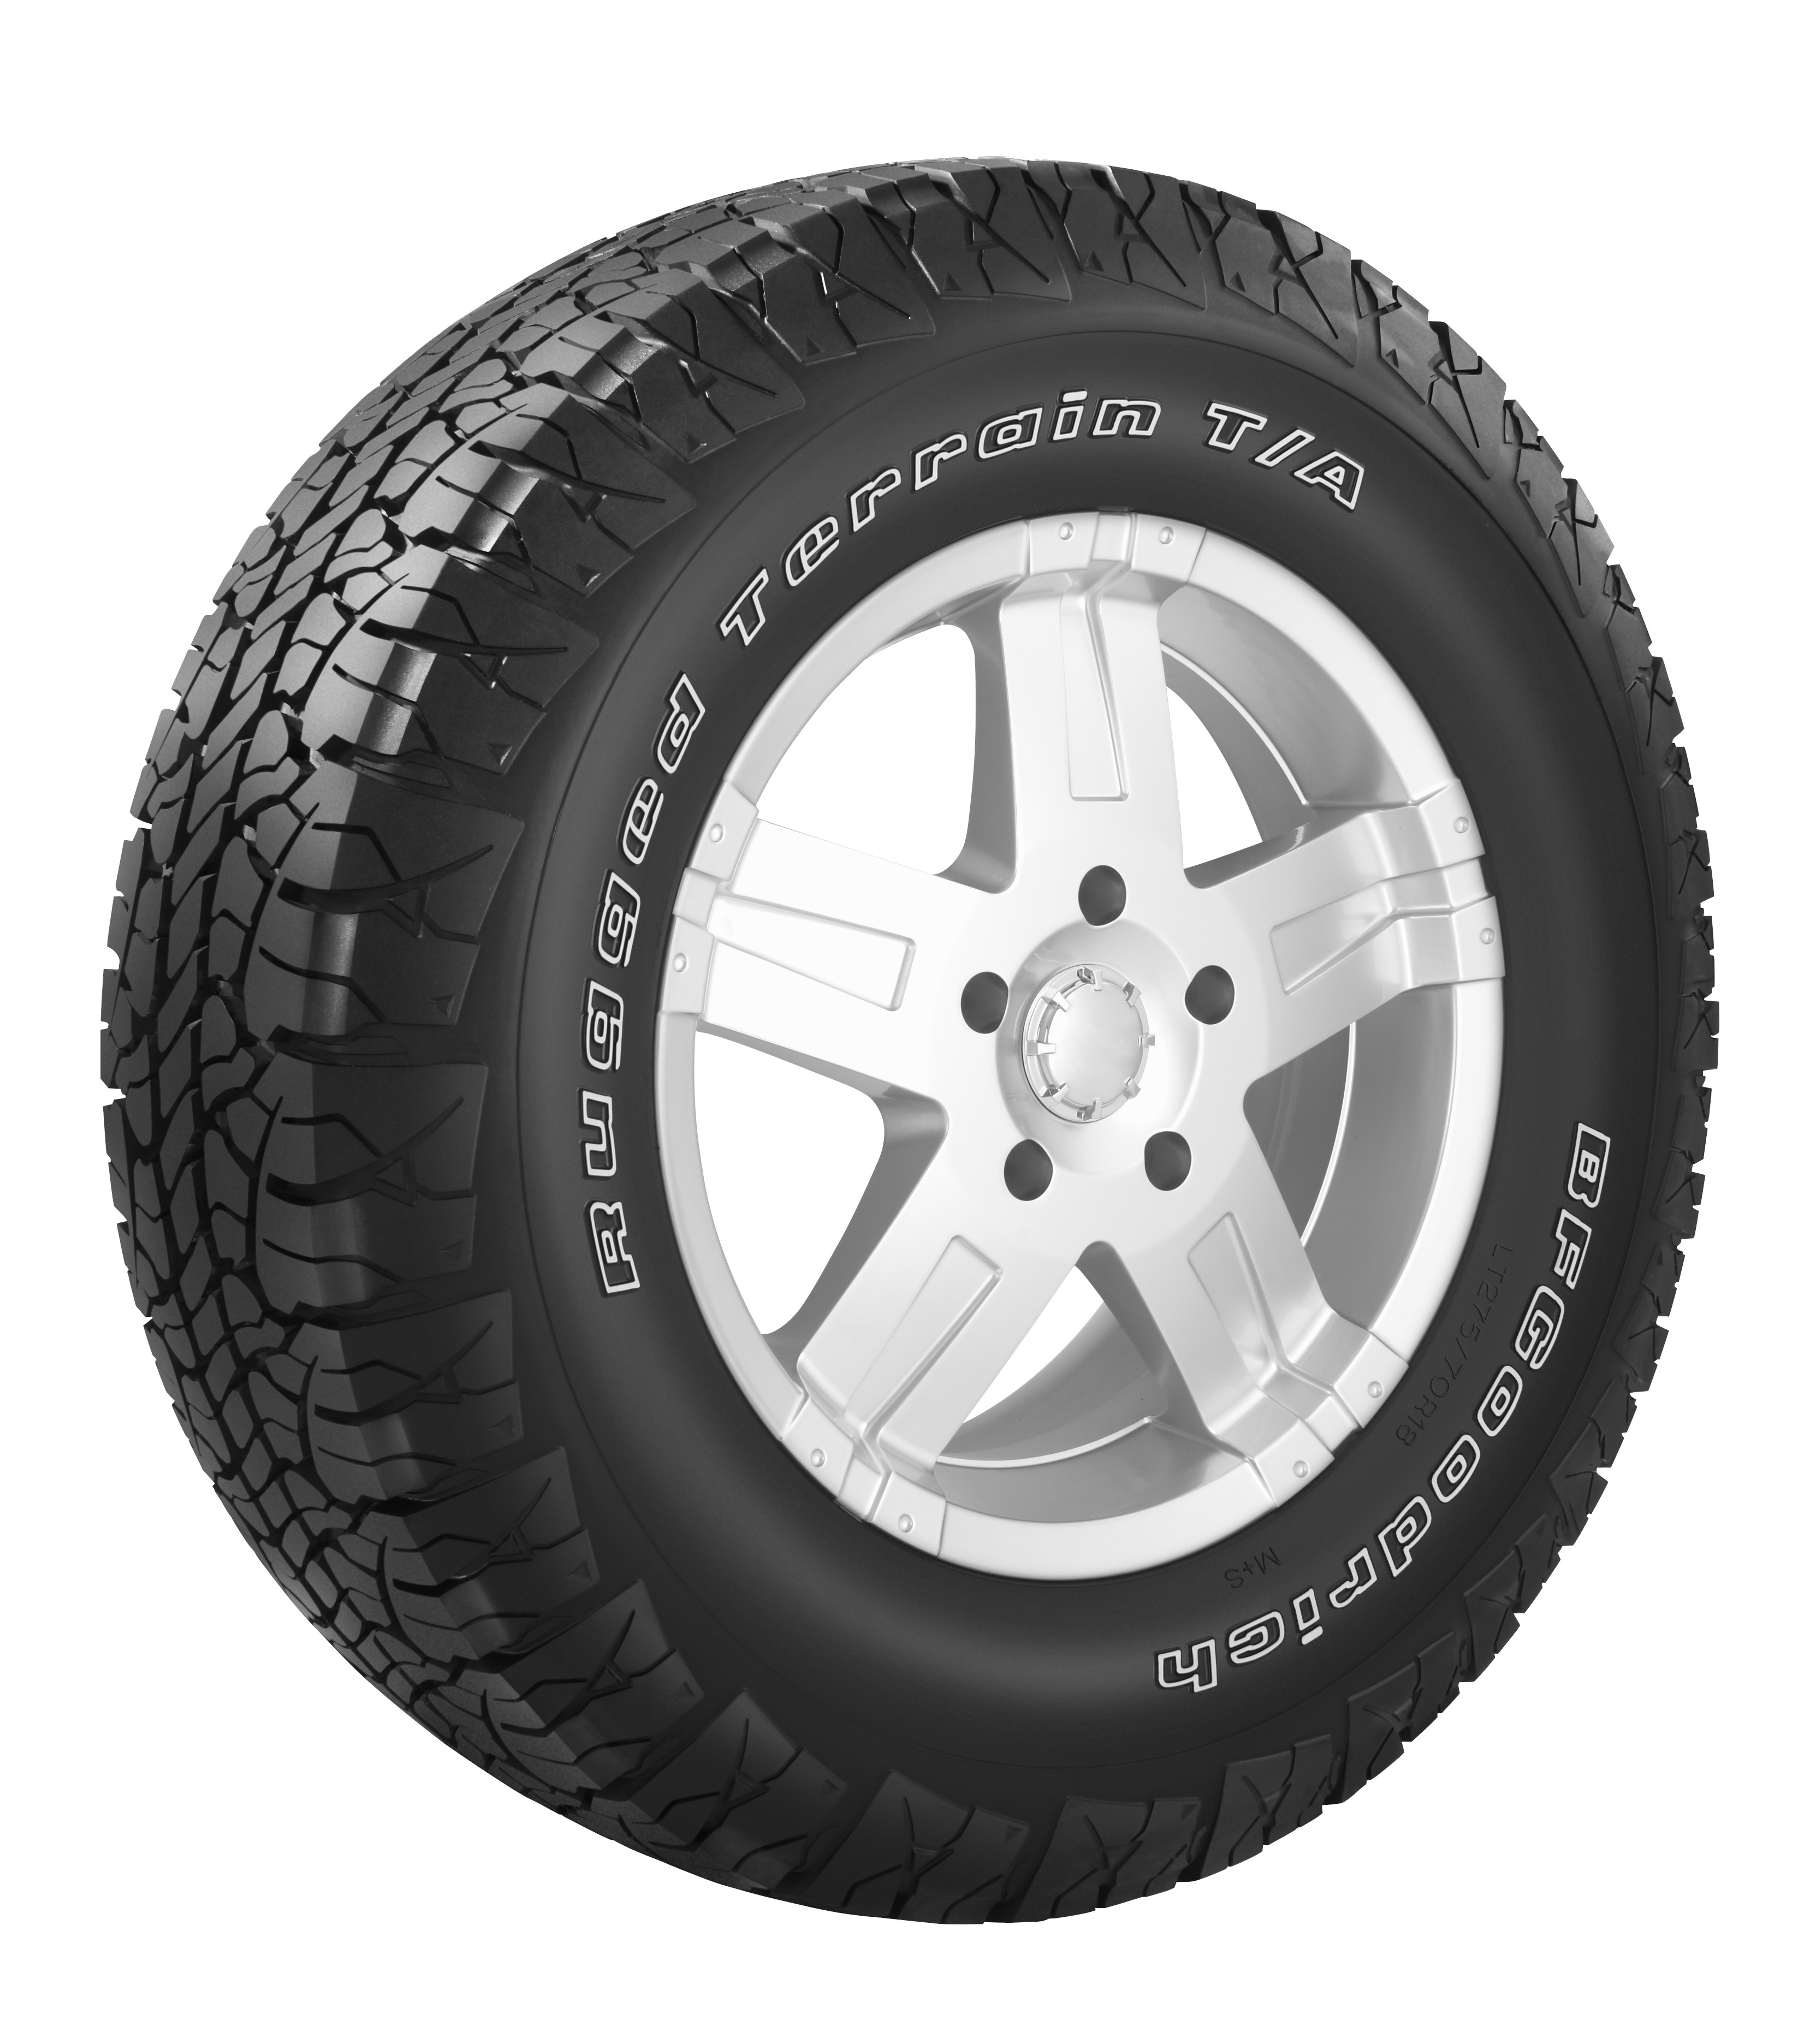 bfgoodrich rugged terrain ta - photo #21